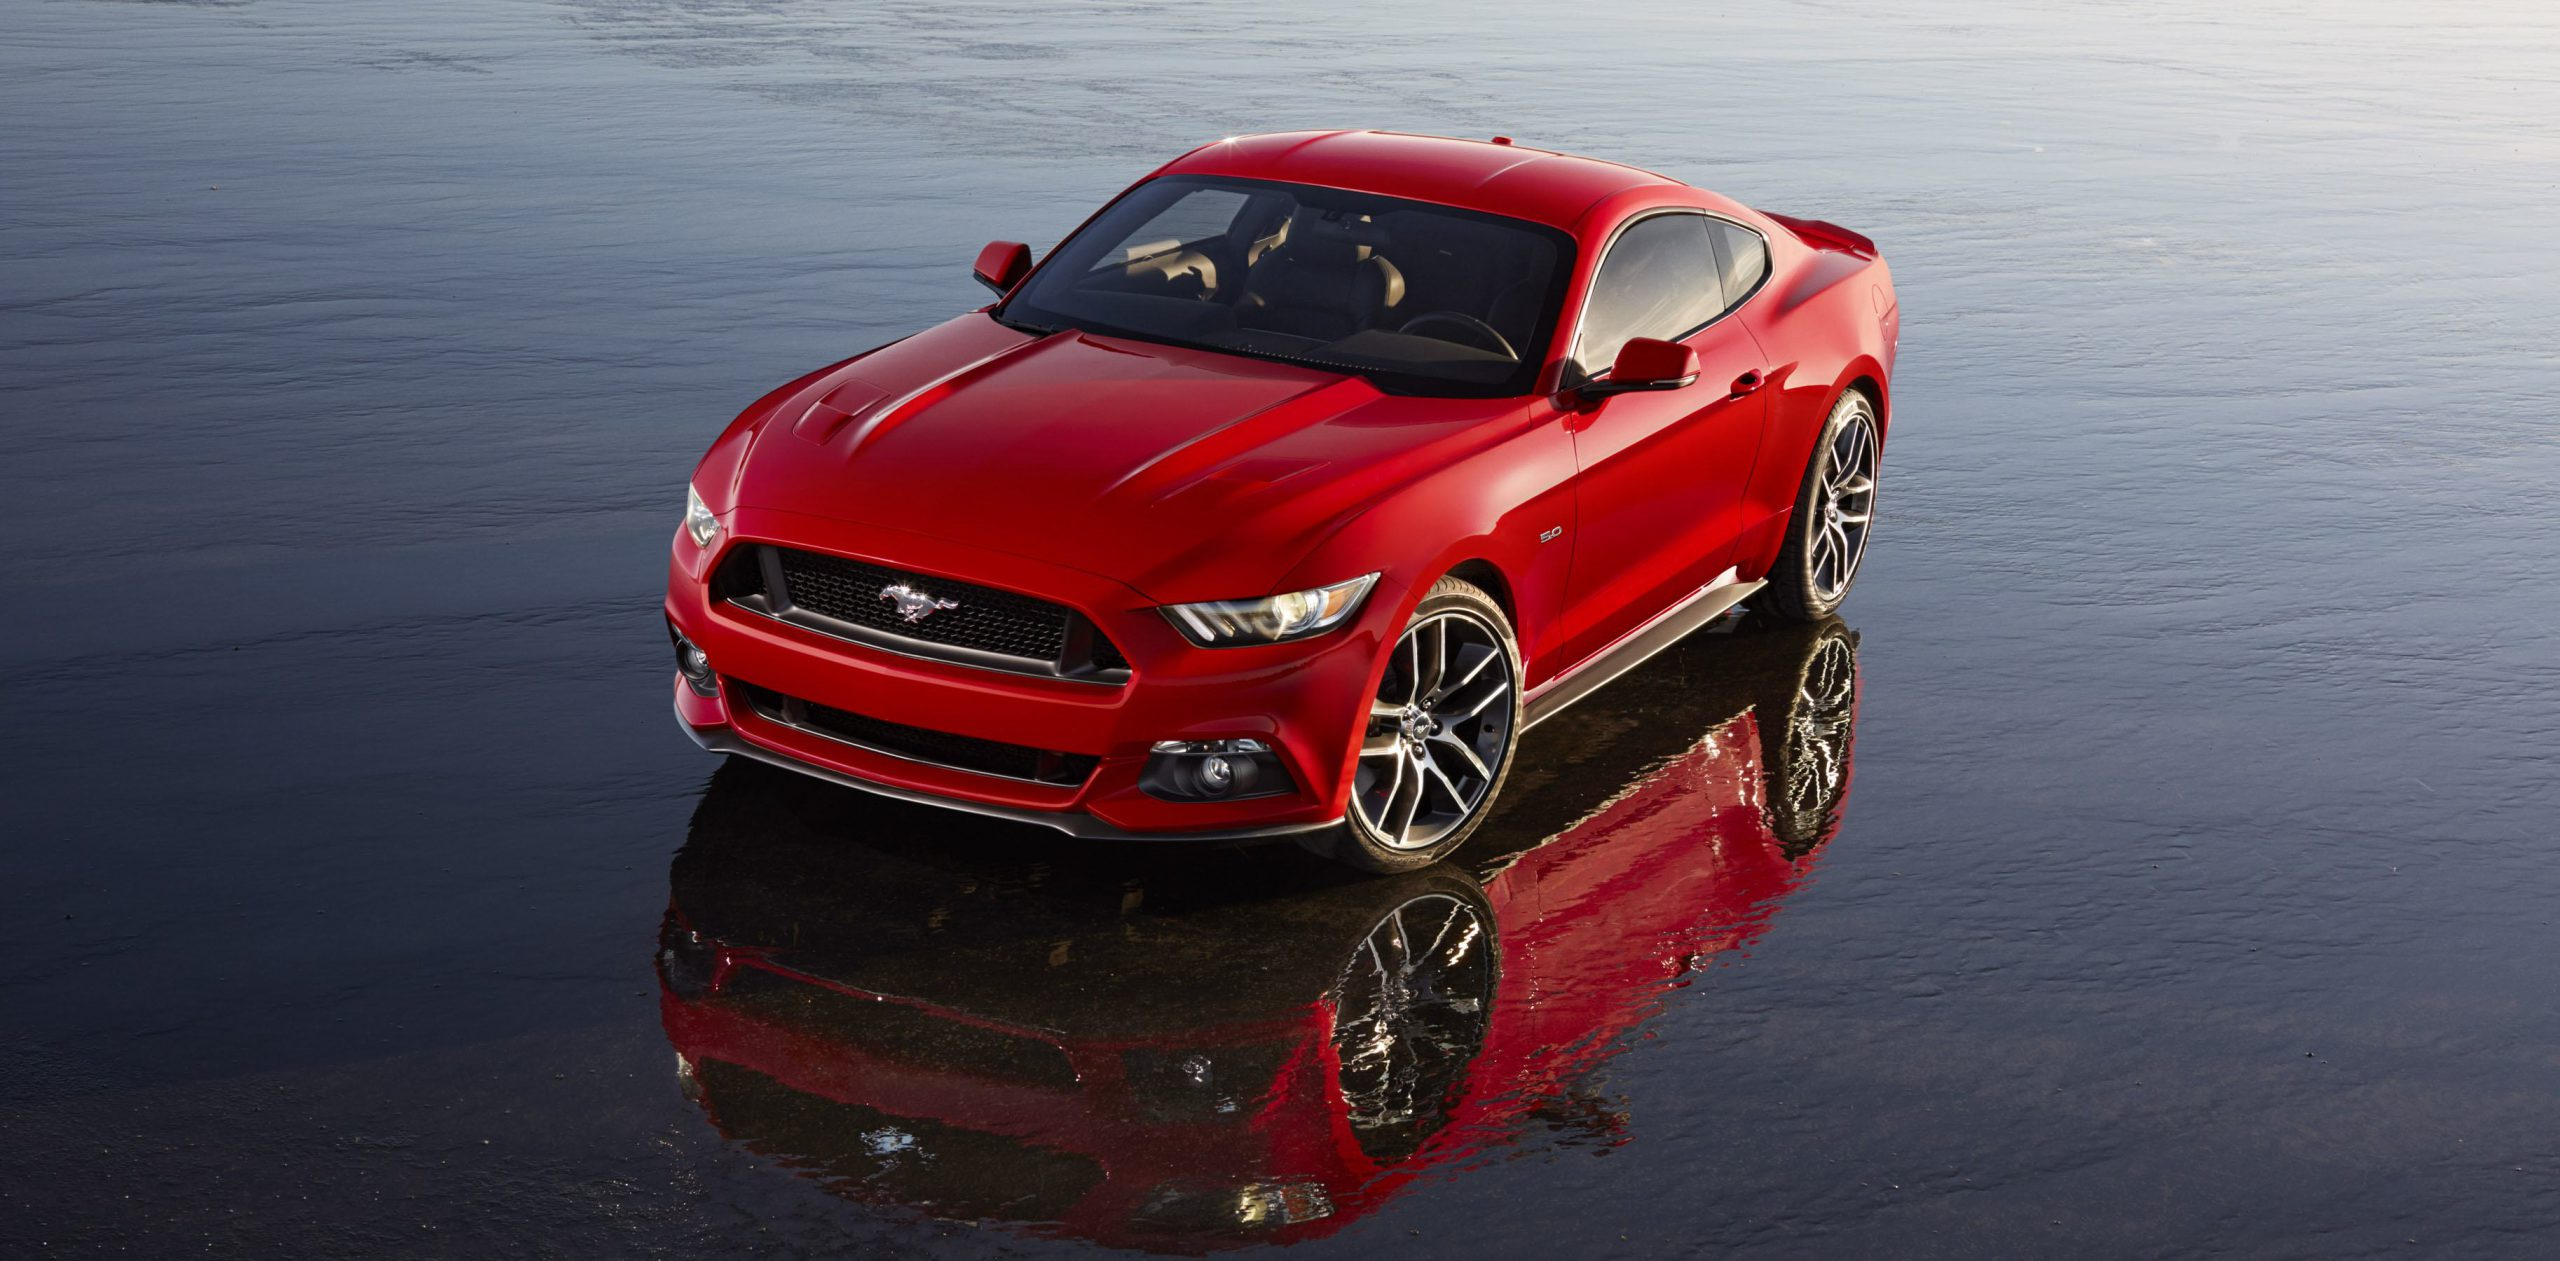 Ford Mustang Confirmed For SA: Latest News – Surf4cars